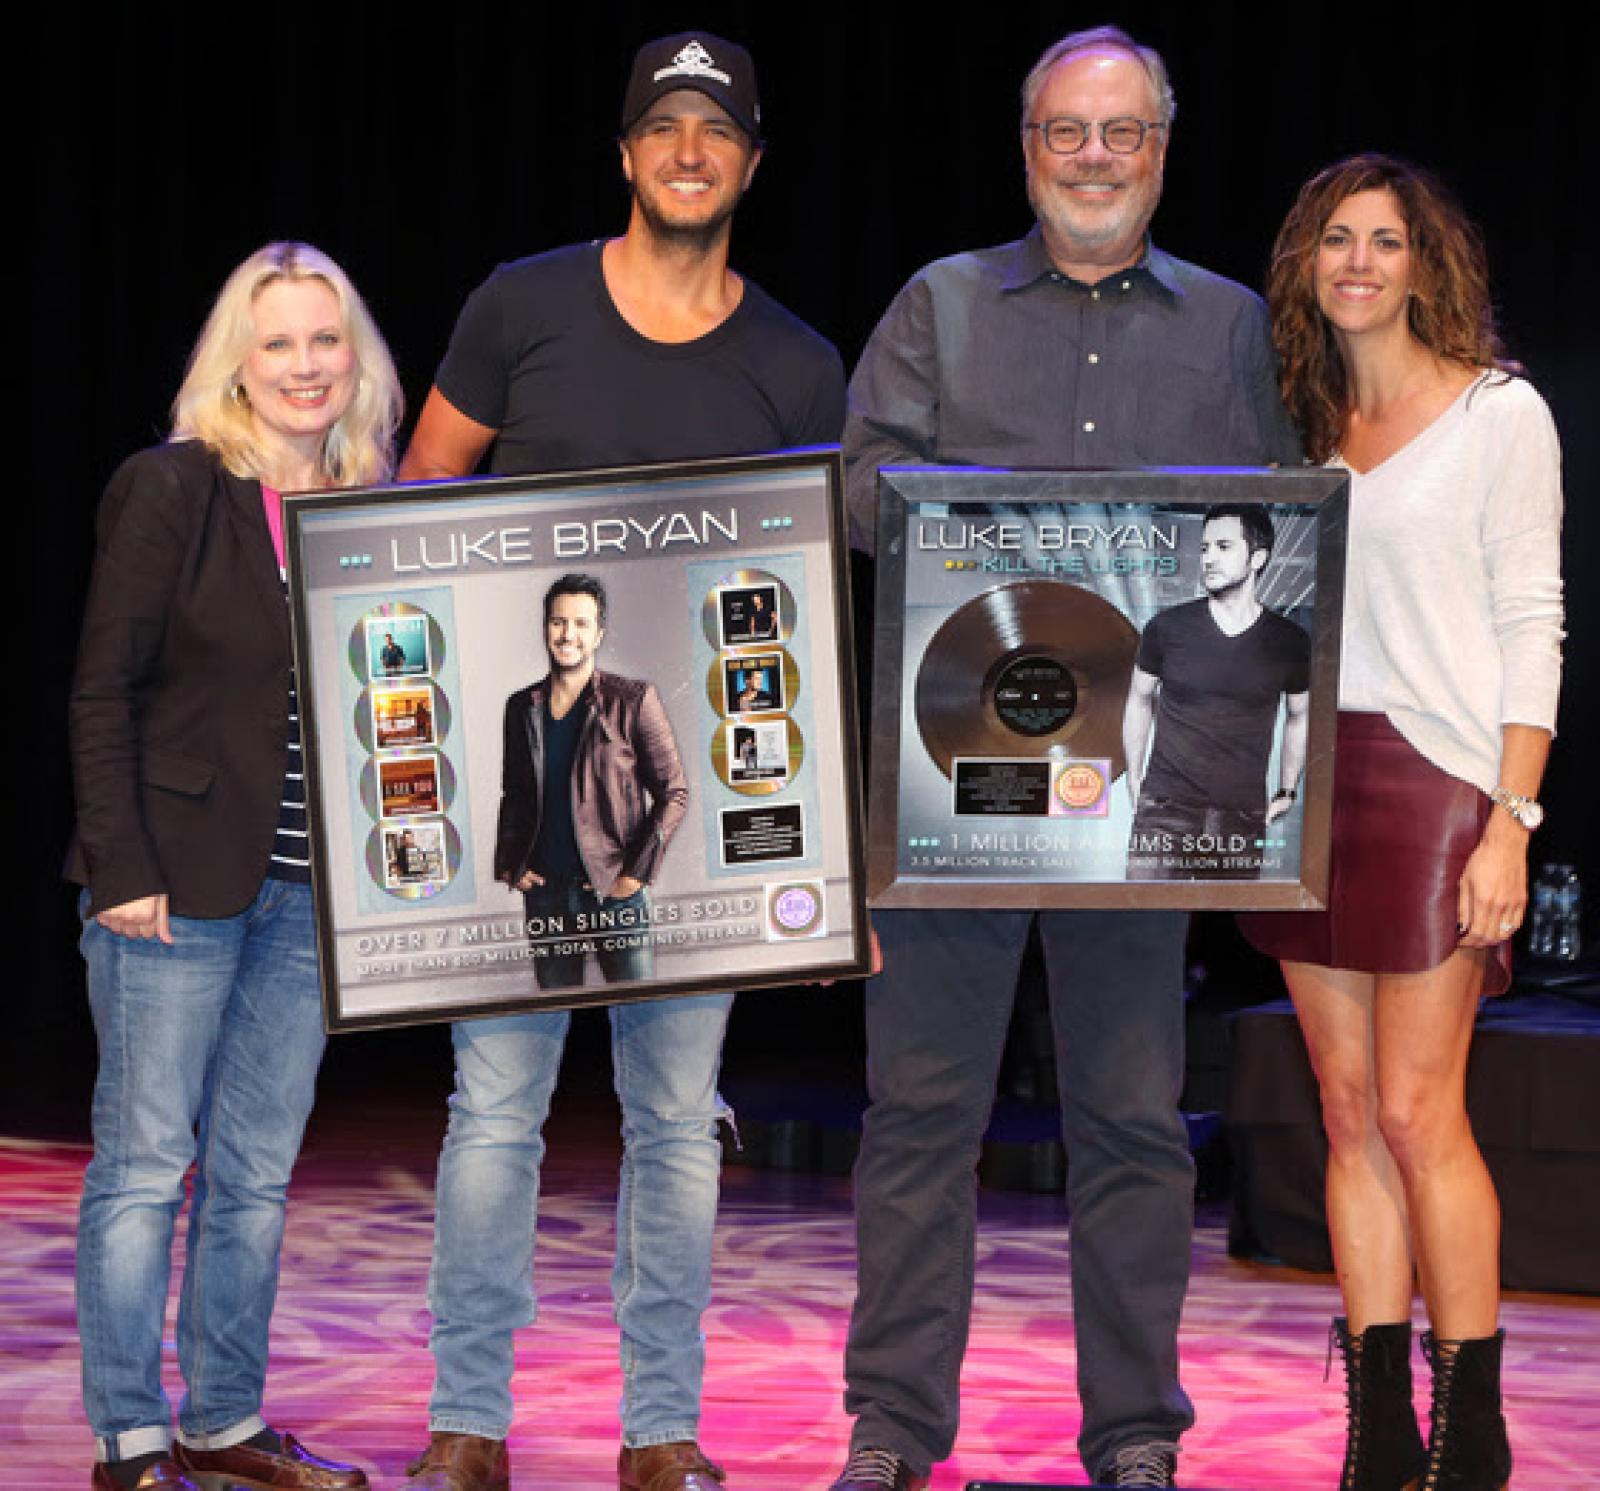 Luke Bryan Celebrates Seven Consecutive #1 Singles Which Have Sold Over 7 Million Tracks and Over 600 Million Total Combined S